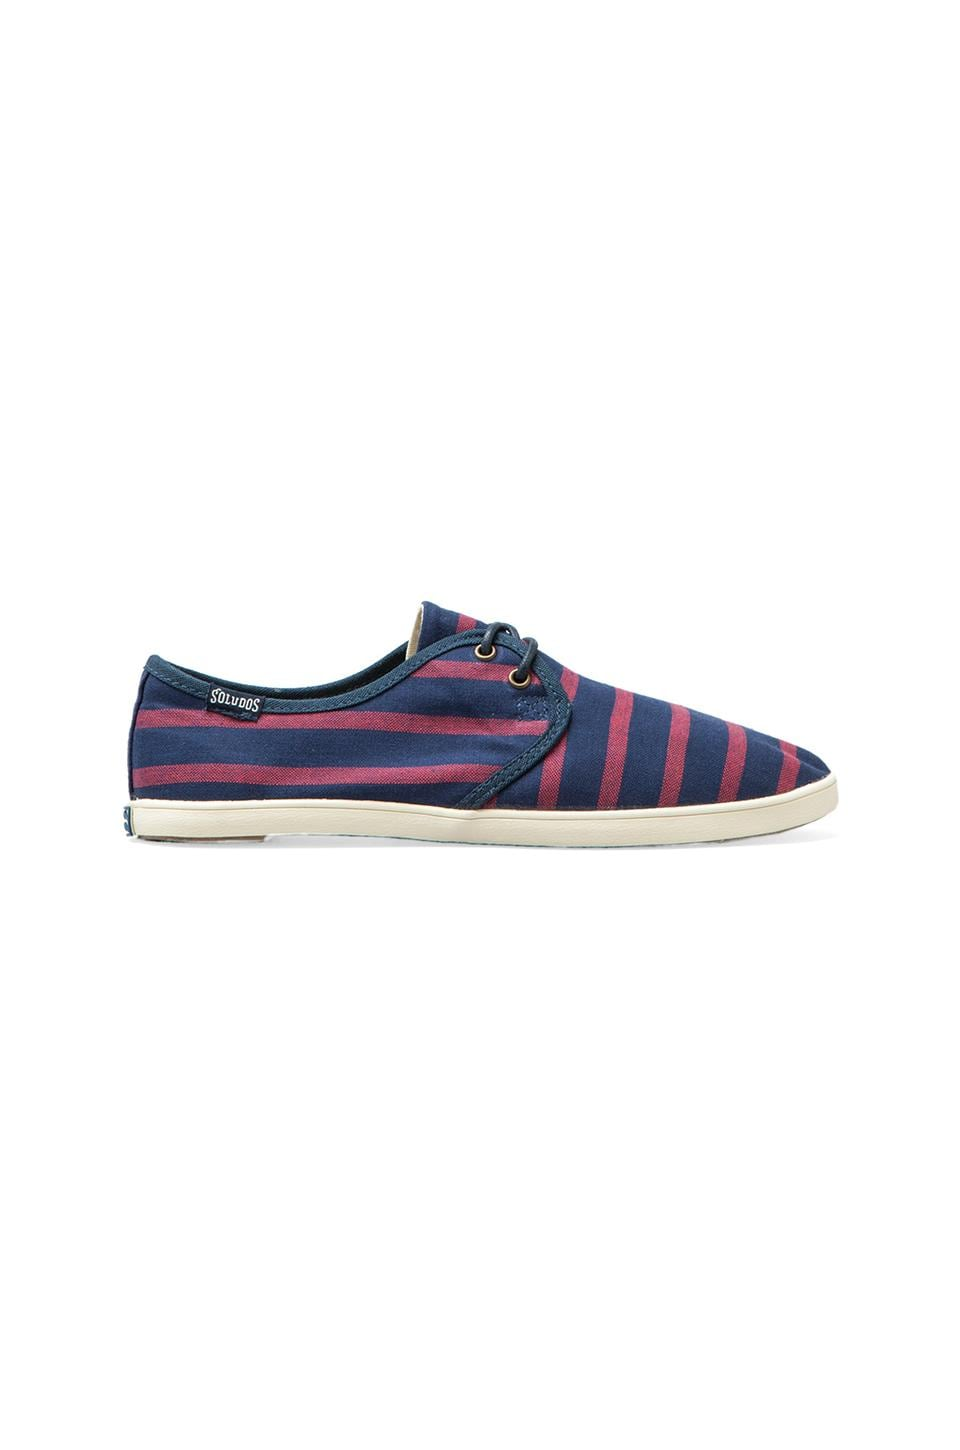 Soludos Classic Stripe Derby in Navy/Red